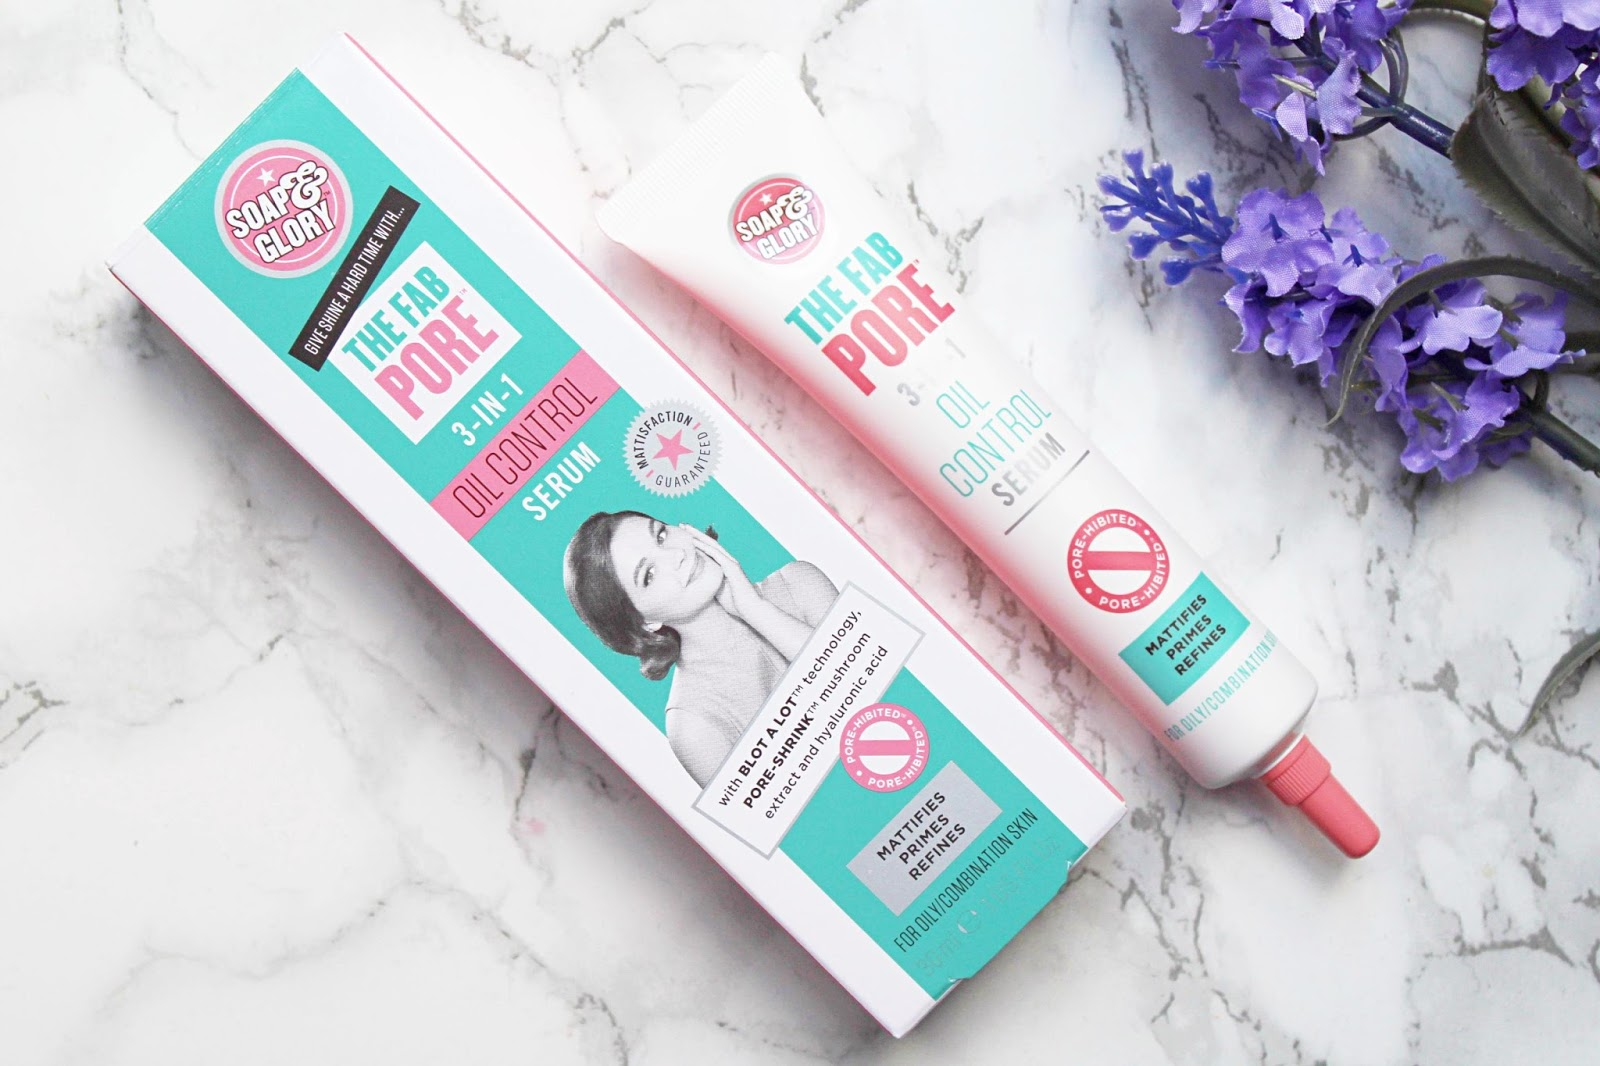 Soap & Glory The Fab Pore 3-in-1 Oil Control Serum Review